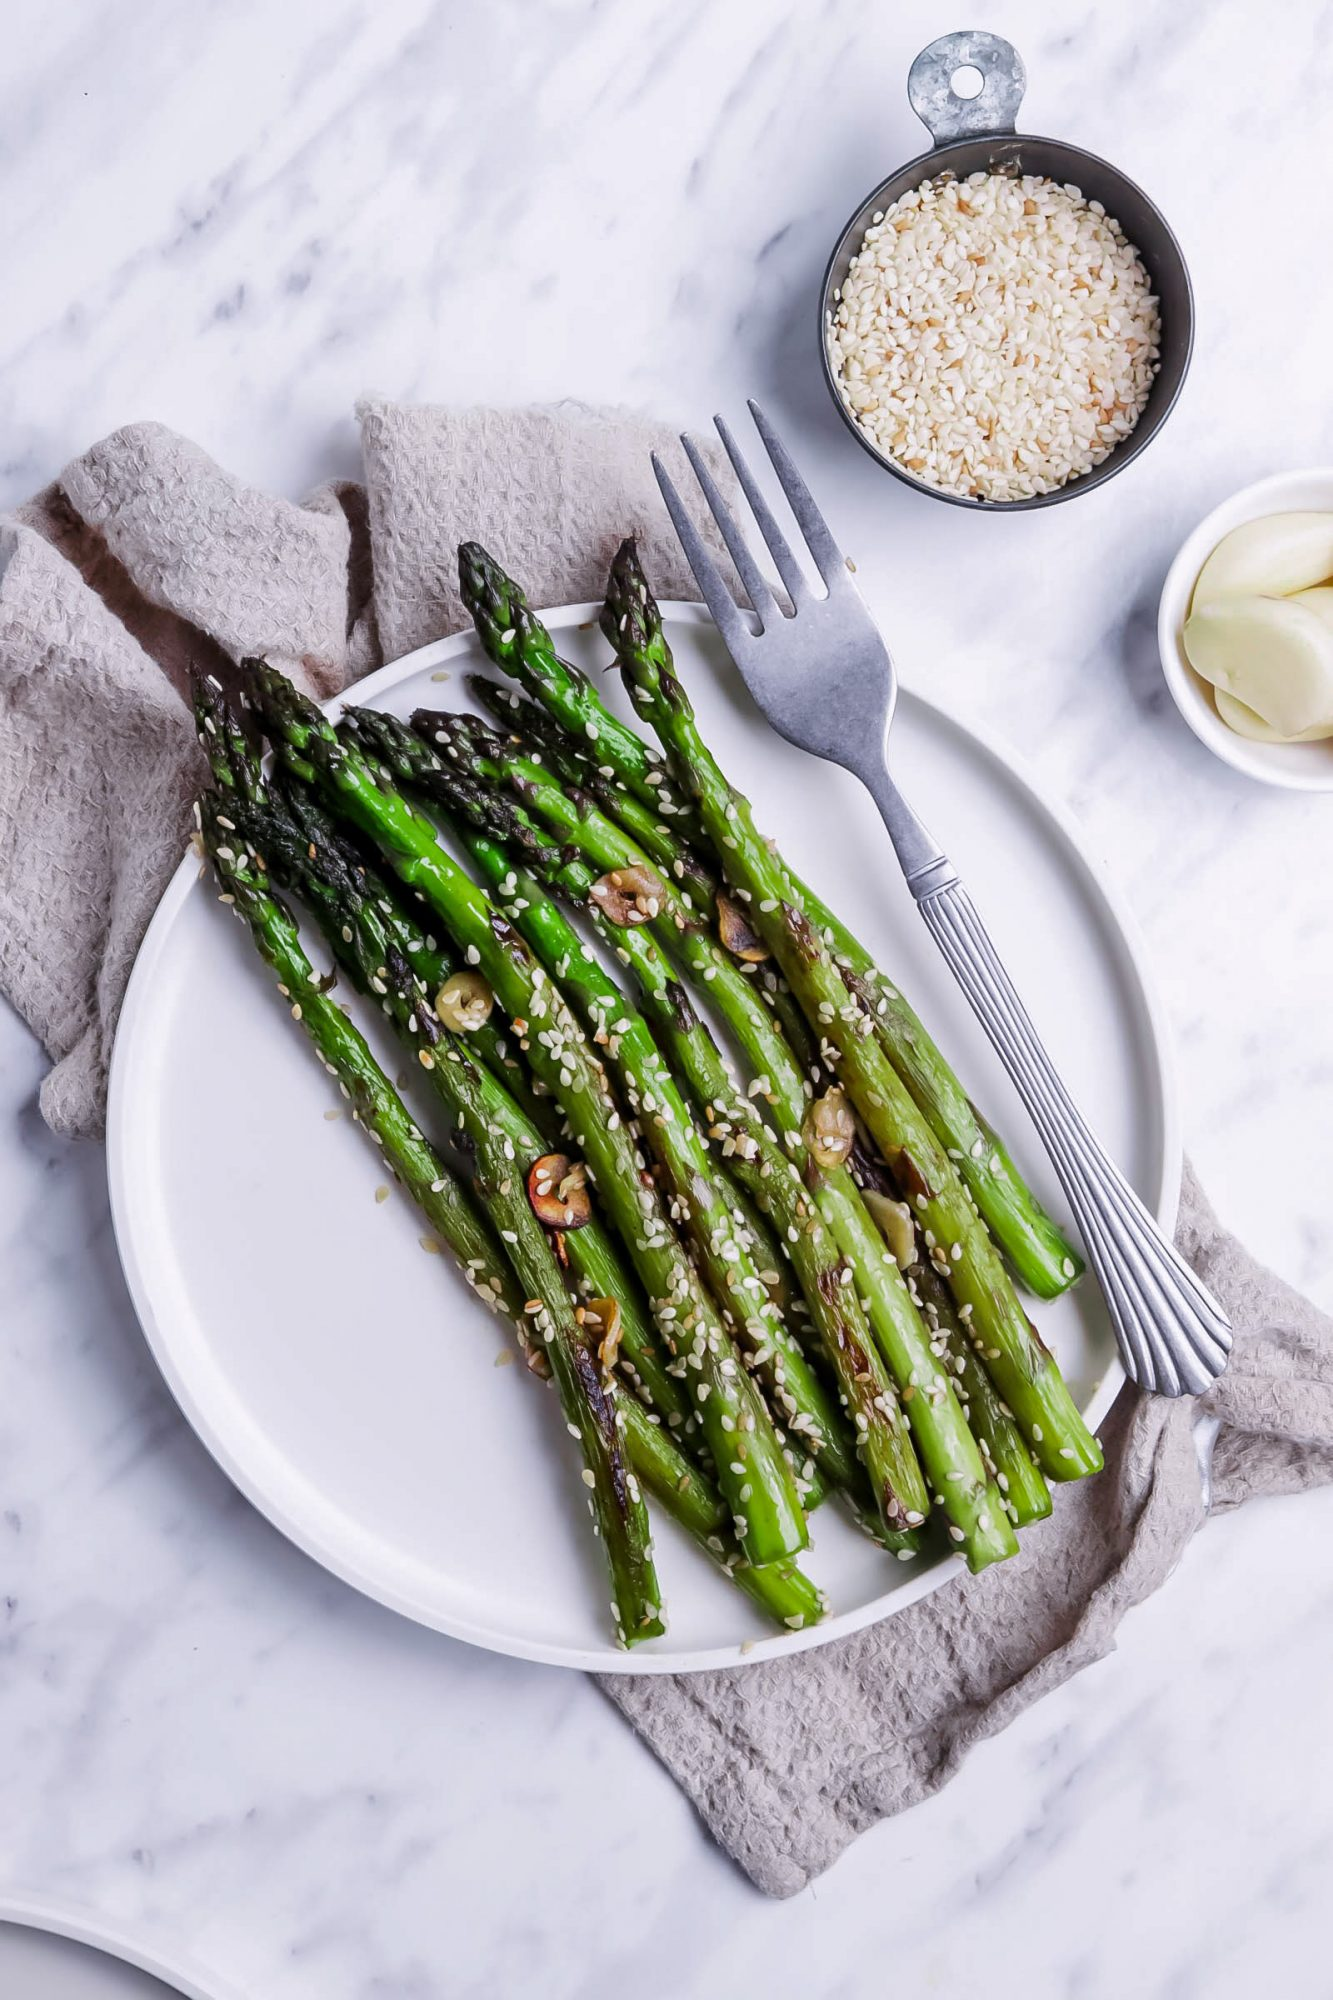 One-Skillet Garlic Asparagus with Sesame Seeds